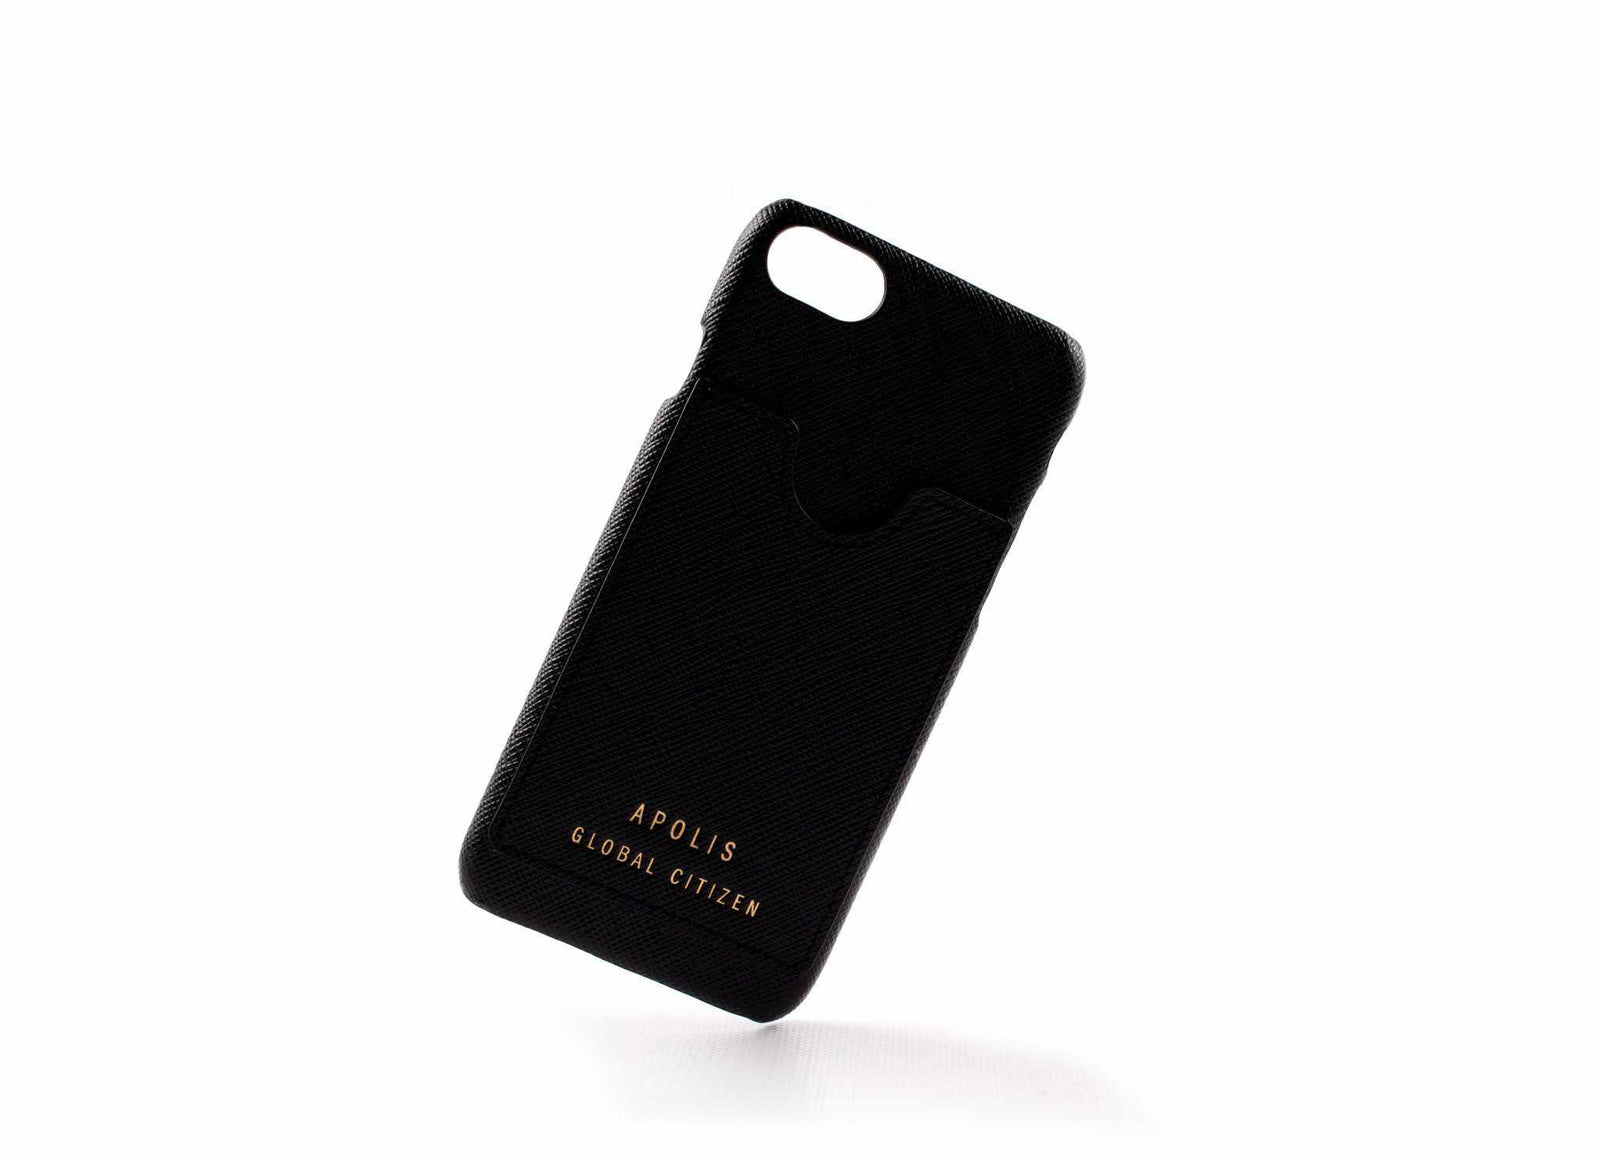 Transit Issue iPhone 7 Case